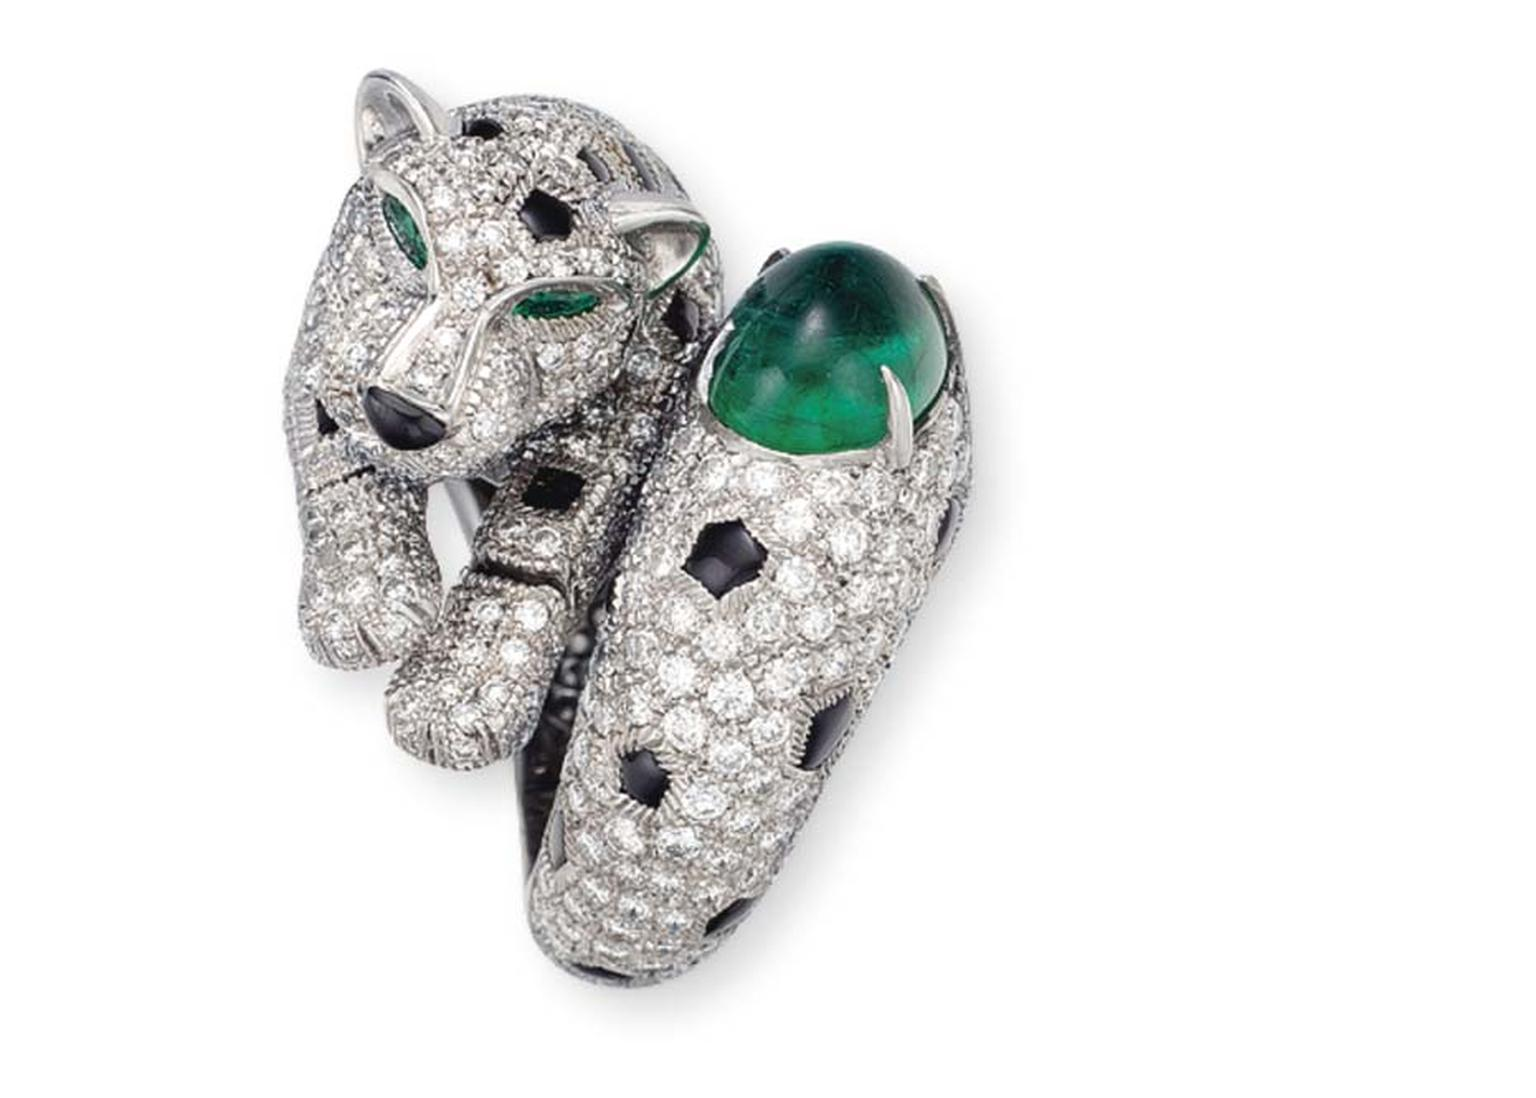 This Cartier emerald, diamond and onyx Panther ring doubled its pre-sale estimate at Christie's Important Jewels sale in New York in 2014.